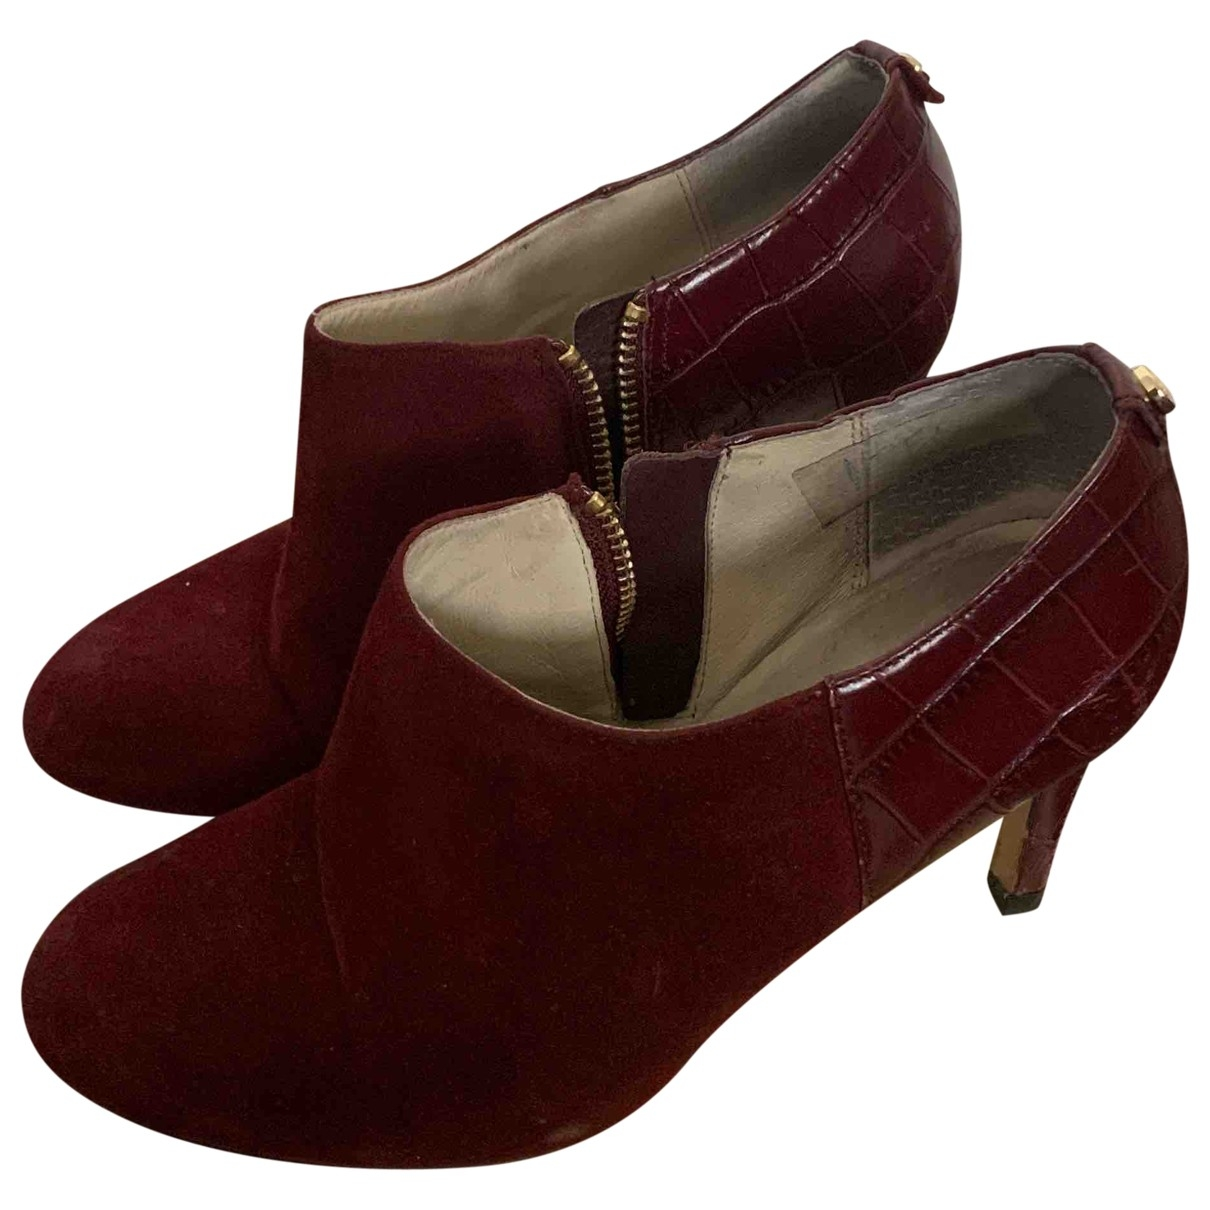 Michael Kors \N Burgundy Leather Ankle boots for Women 35.5 EU